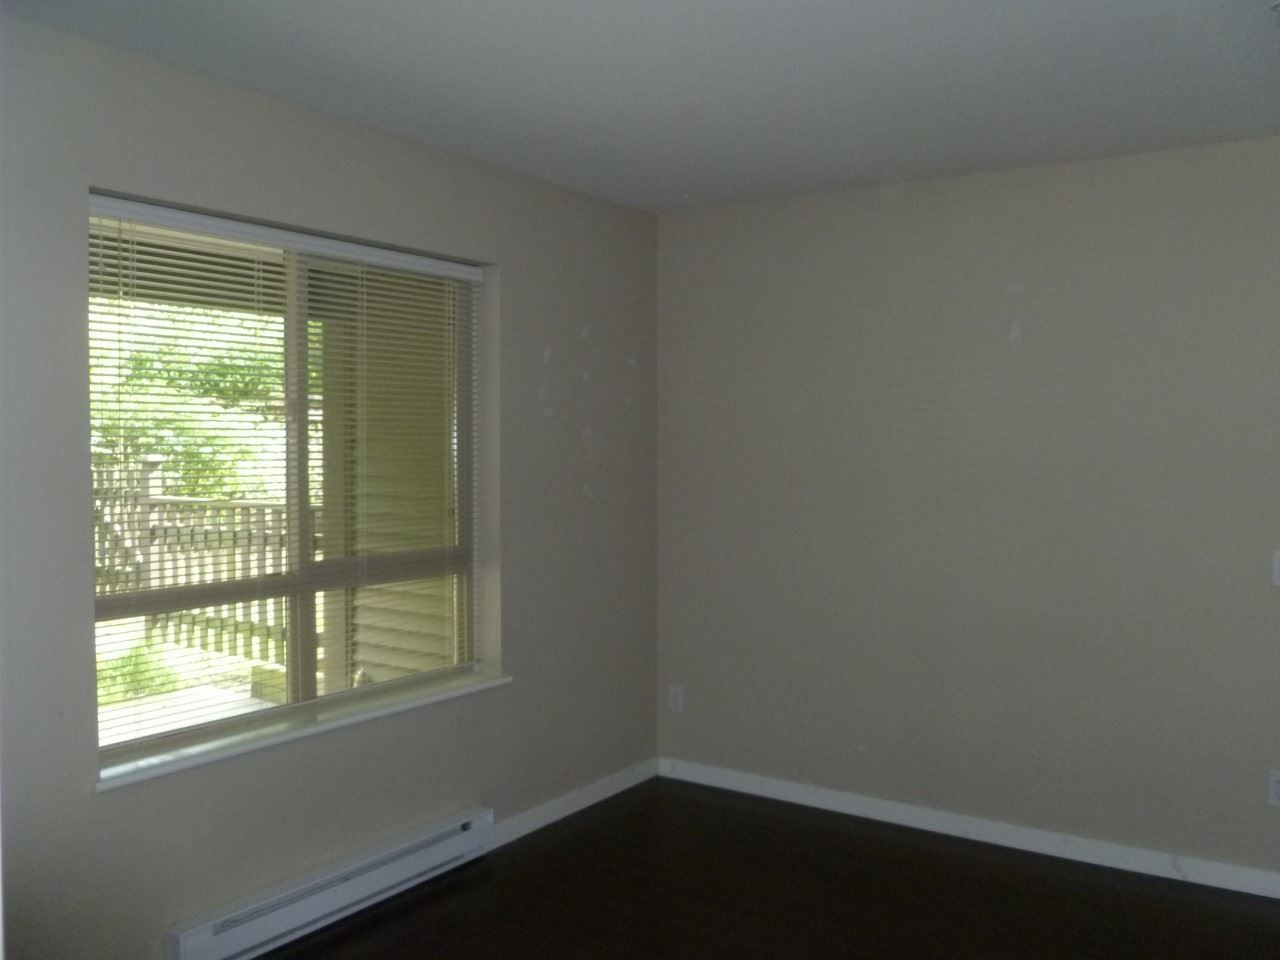 Photo 4: Photos: 103 11665 HANEY BYPASS in Maple Ridge: West Central Condo for sale : MLS®# R2226779